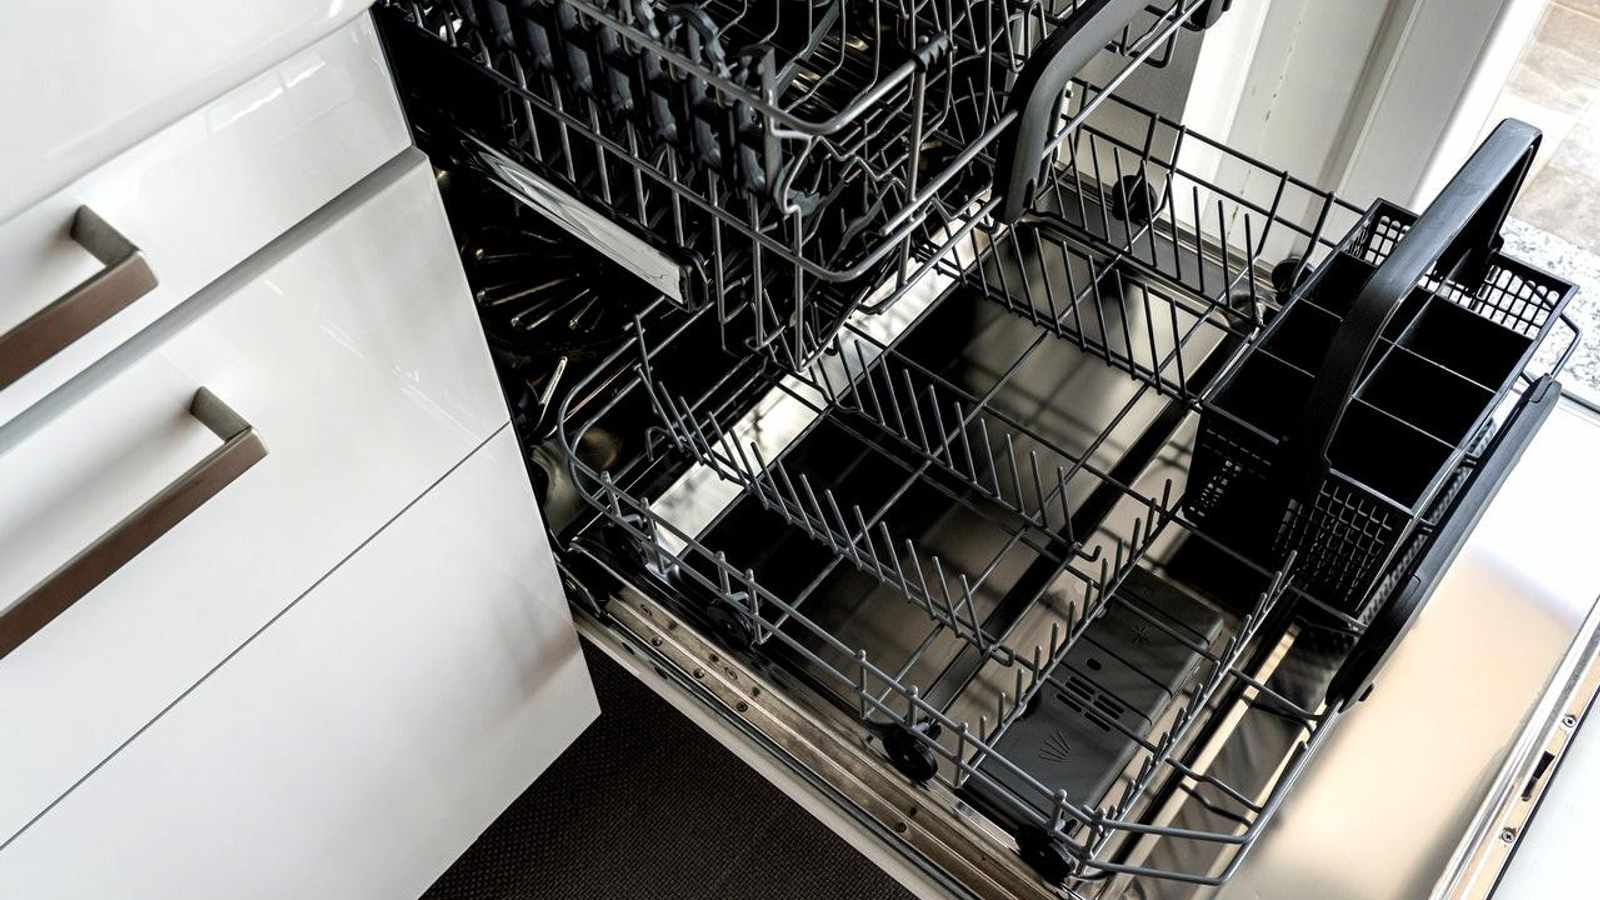 HOW TO CLEAN A DISHWASHER WITH VINEGAR QUICKLY AND EASILY